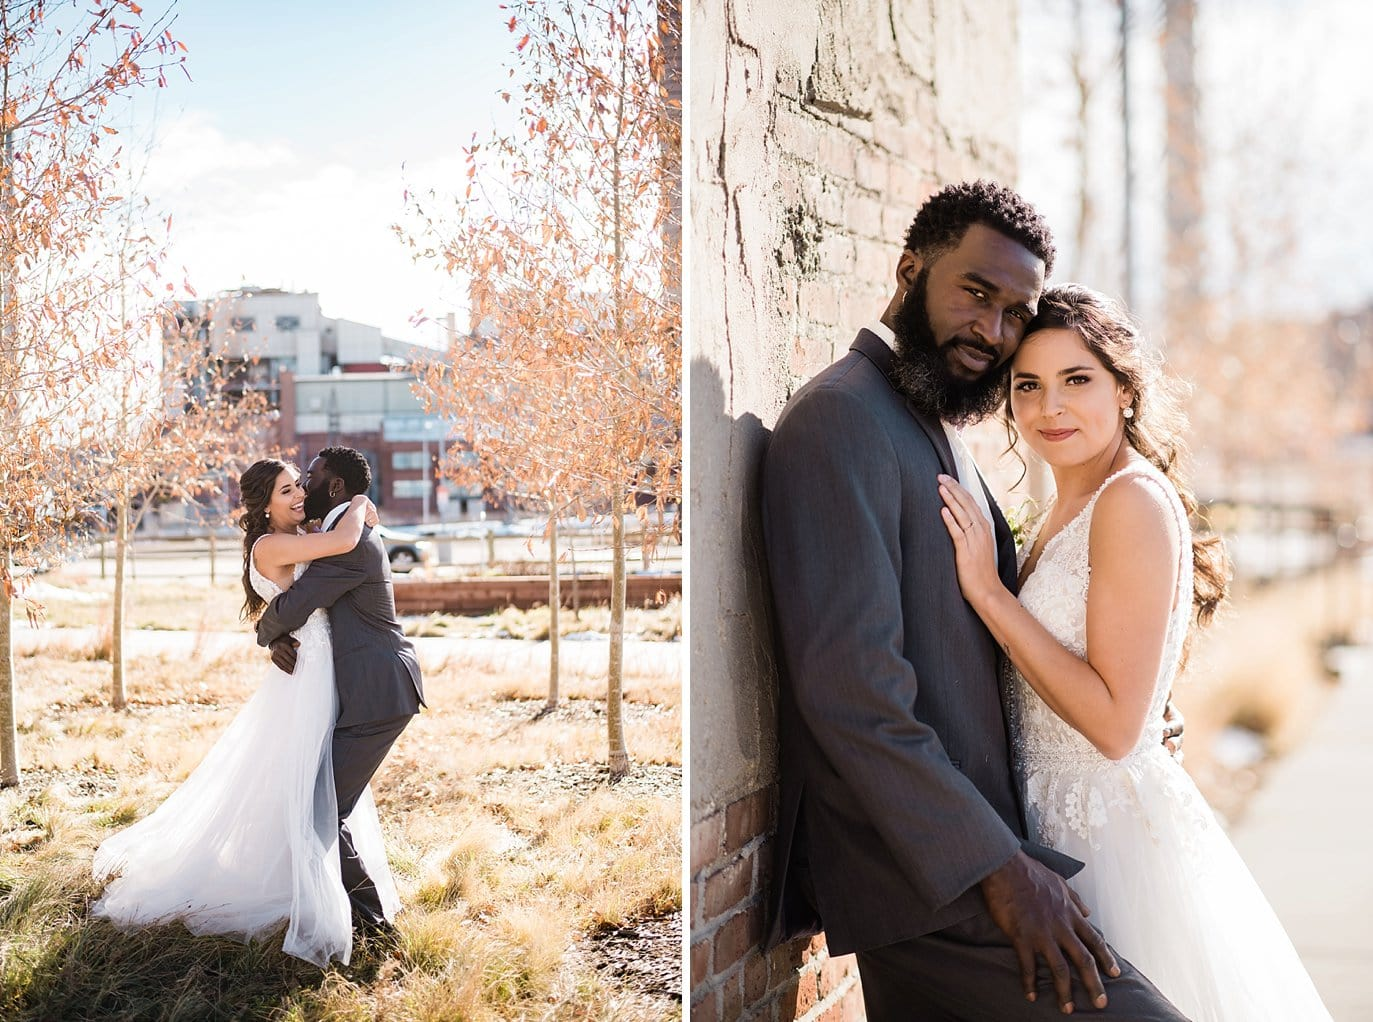 bride and groom outdoor industrial portraits by STEAM on the Platte at Shyft Denver wedding by Boulder Wedding photographer Jennie Crate photographer